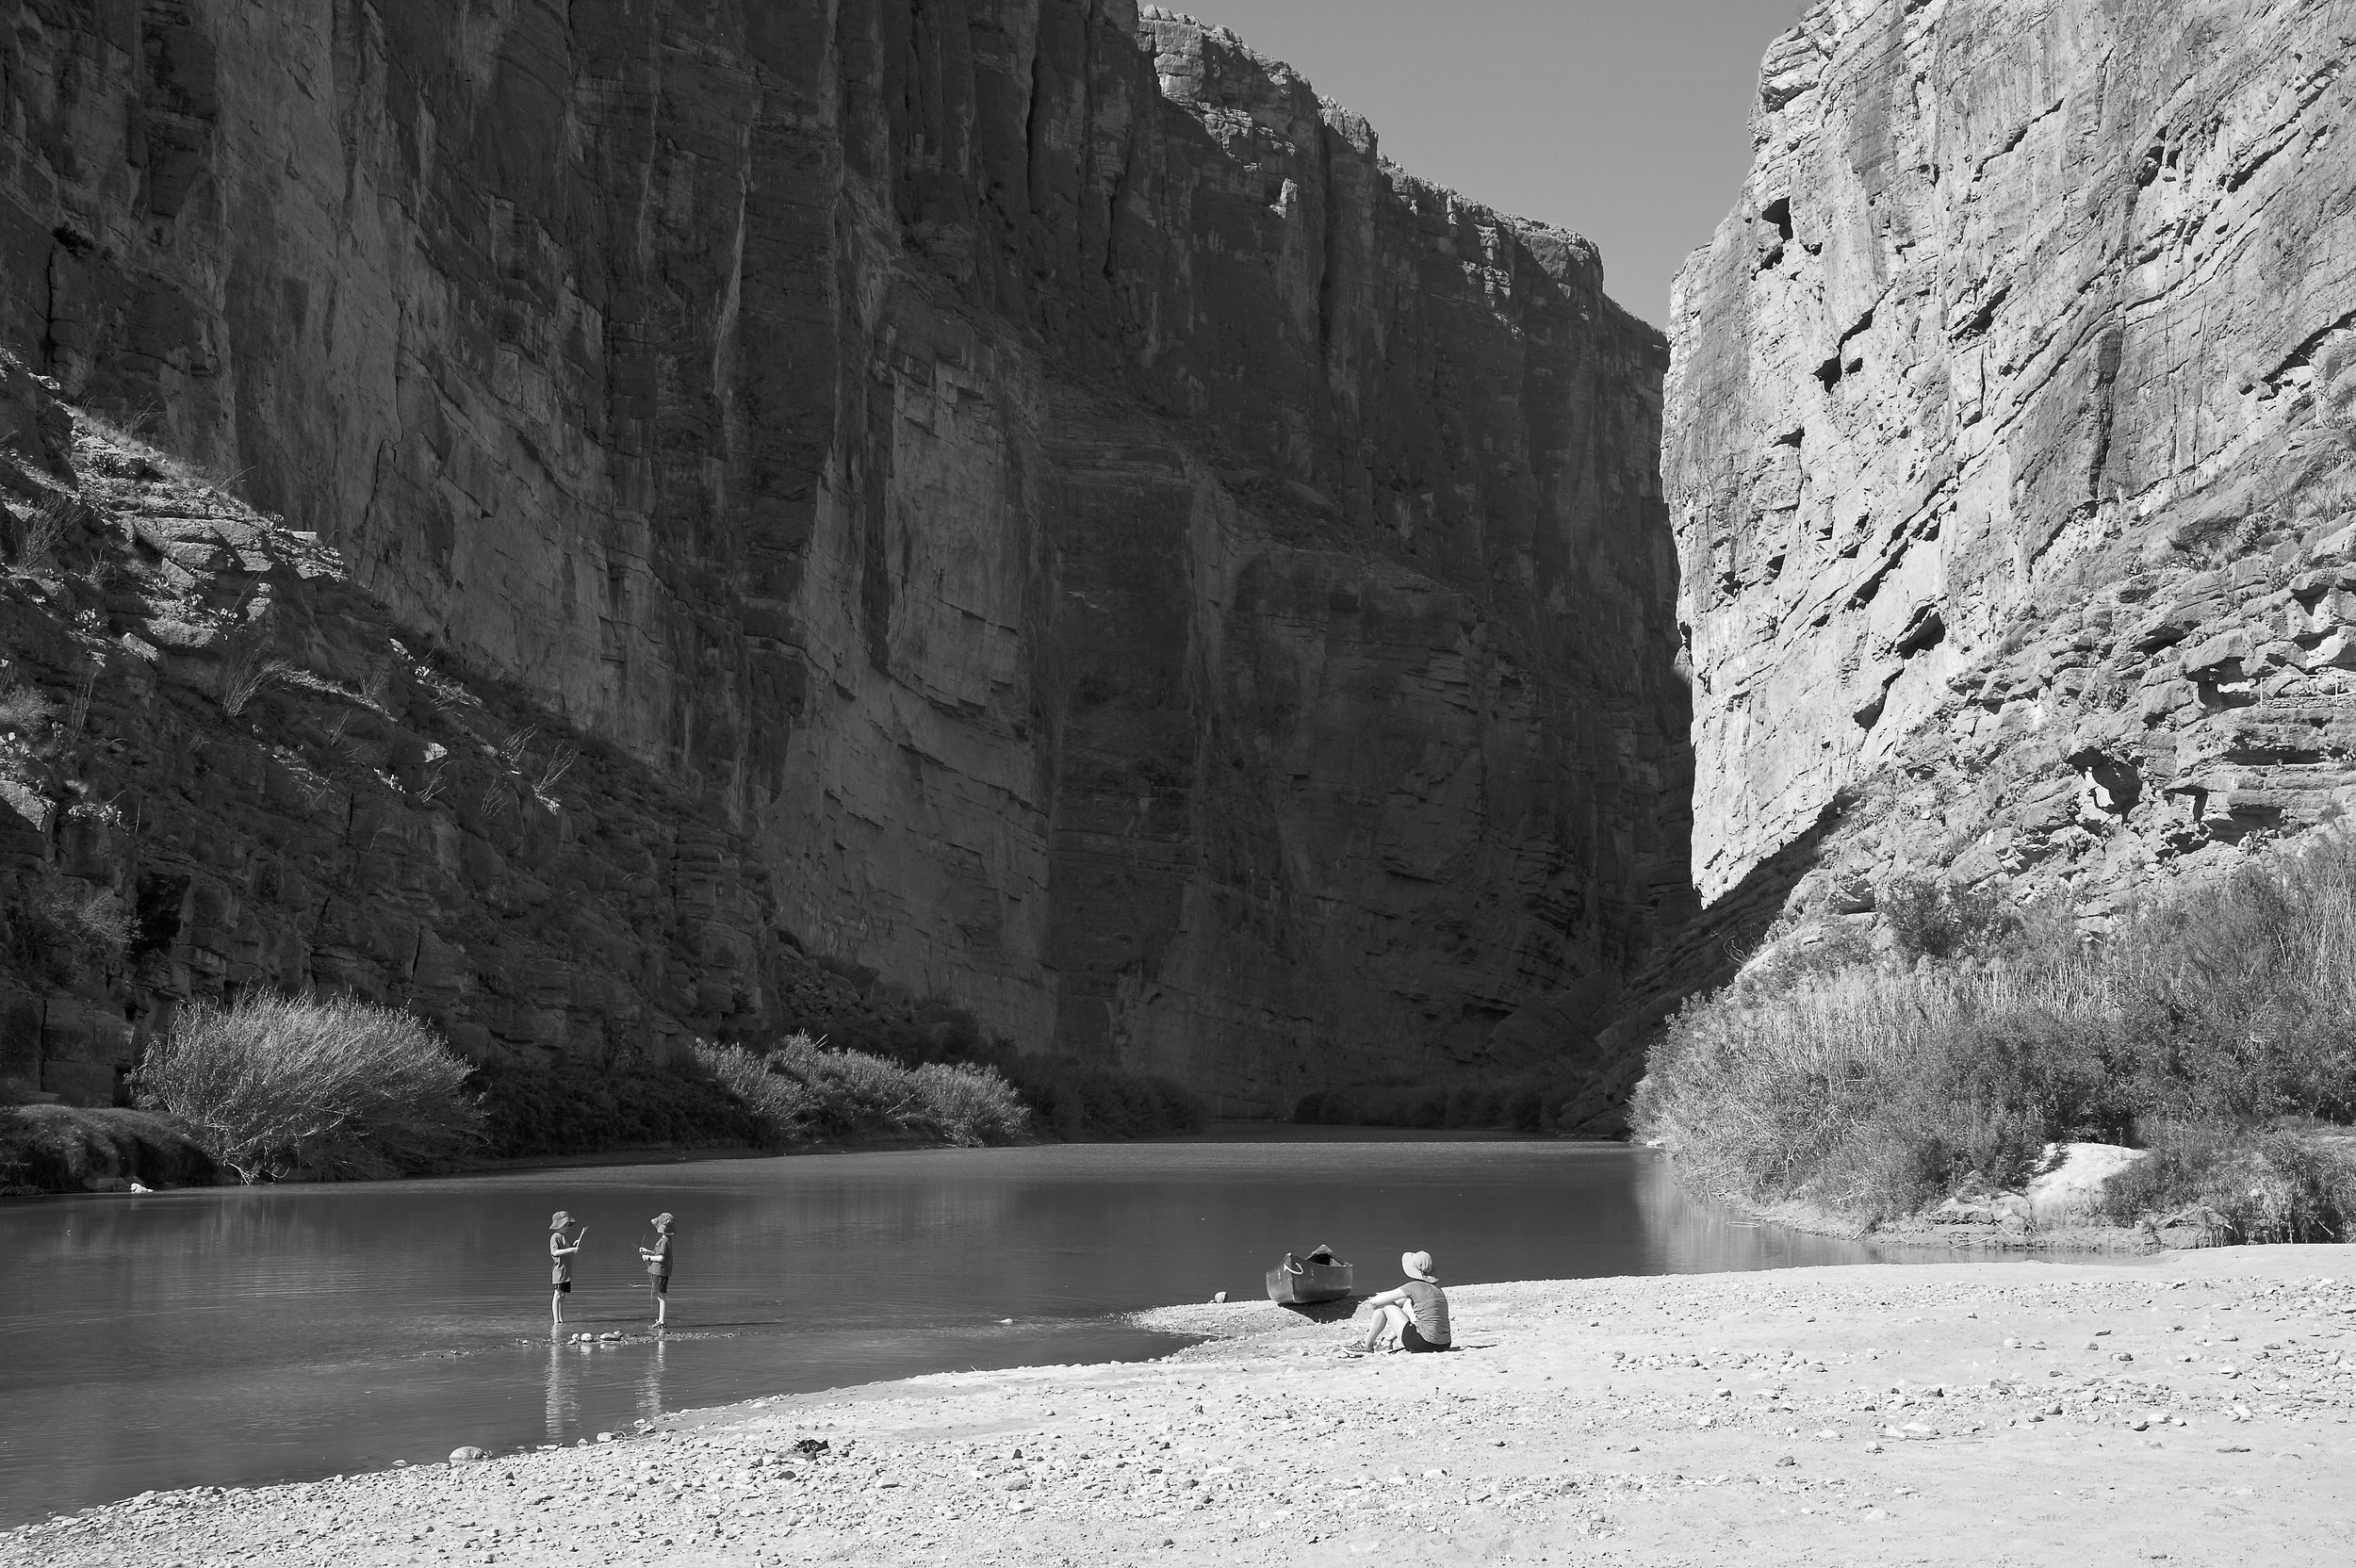 Big_Bend_Canyon_DSC5871.jpg